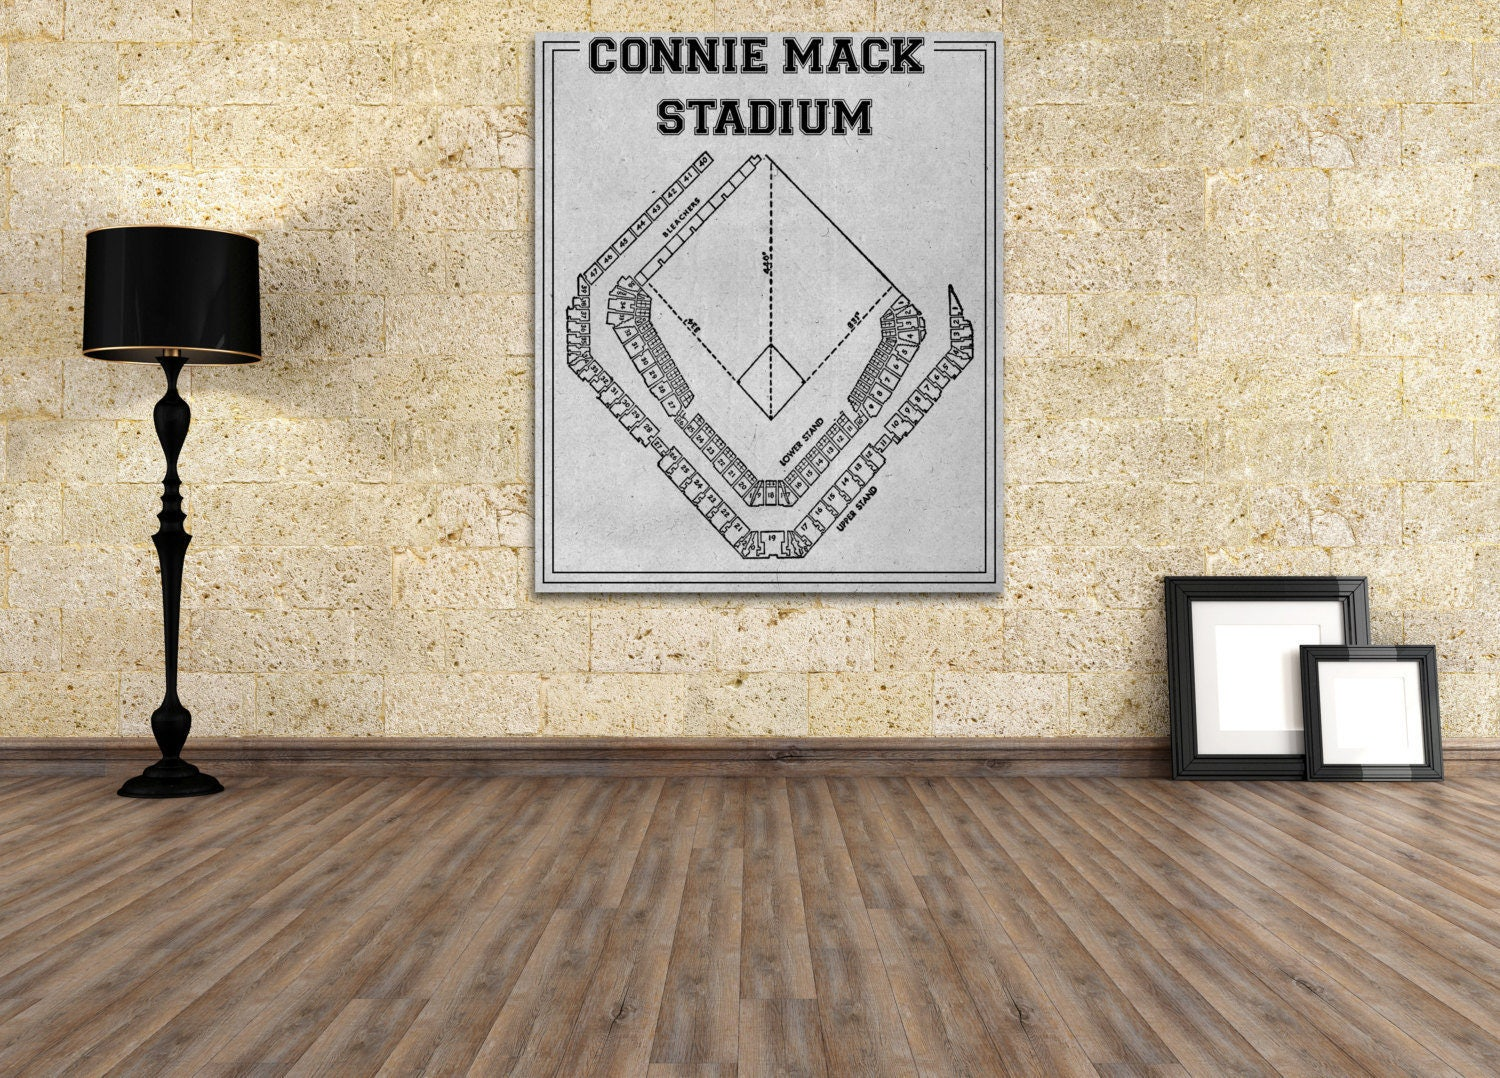 Vintage print of connie mack stadium seating chart philadelphia vintage print of connie mack stadium seating chart philadelphia athletics baseball blueprint on photo paper matte paper or stretched canvas malvernweather Image collections